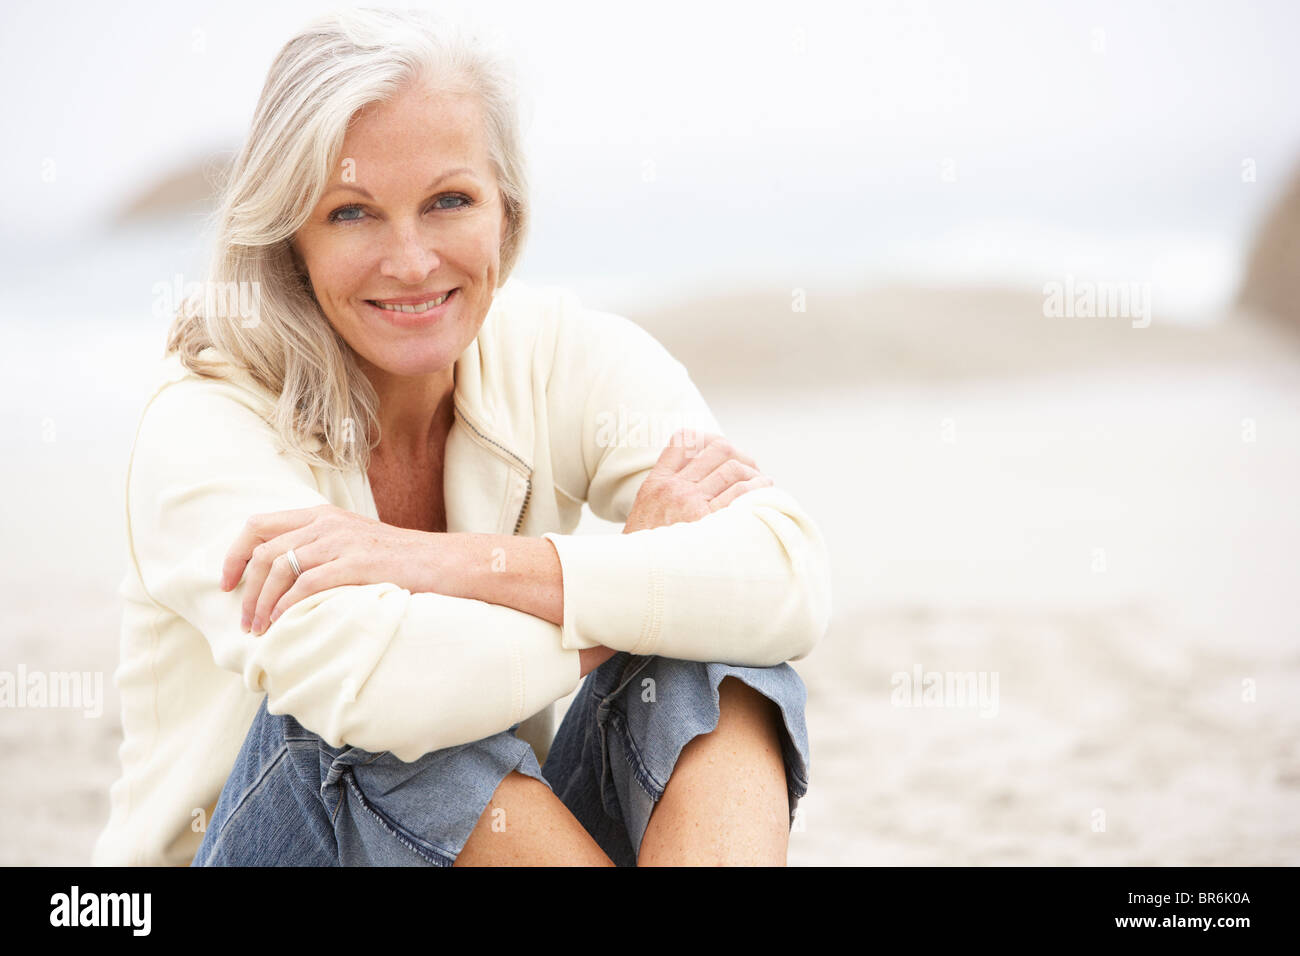 Senior Woman On Holiday Sitting On Winter Beach - Stock Image